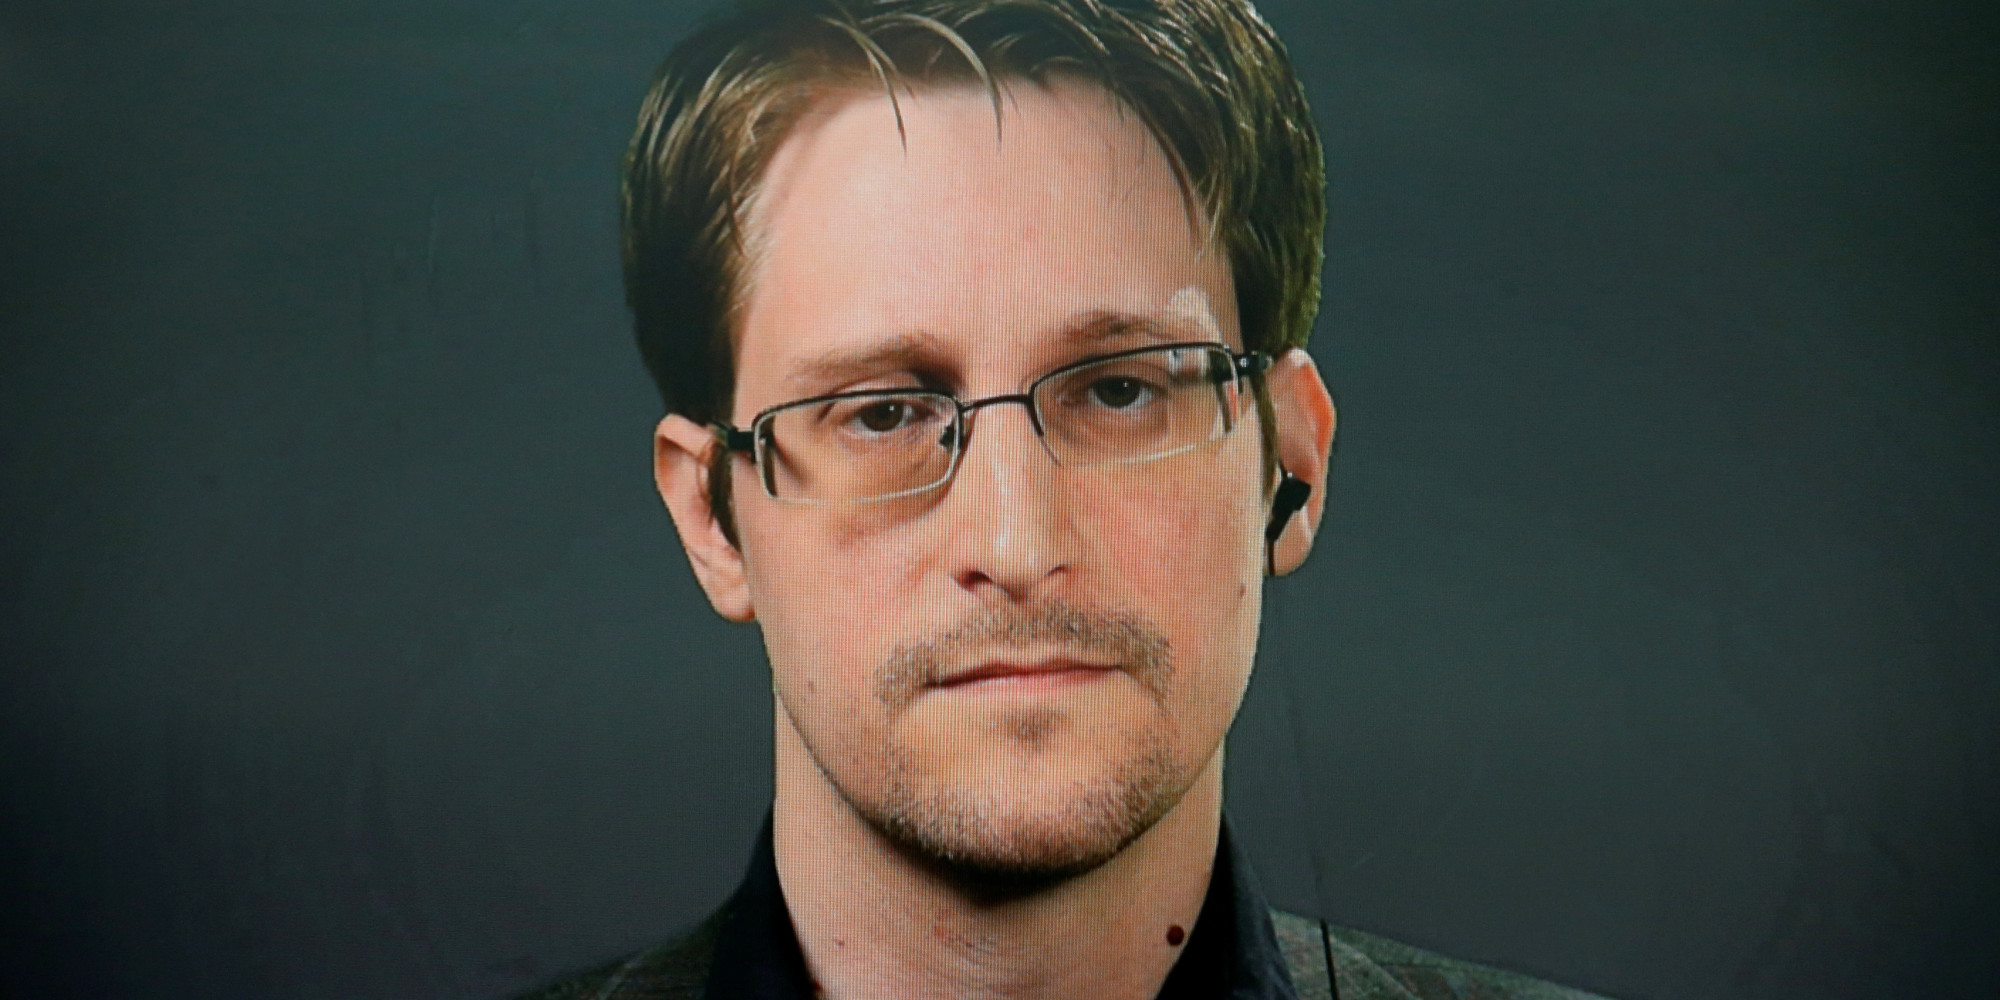 edward snowden facebookedward snowden film, edward snowden twitter, edward snowden russia, edward snowden kimdir, edward snowden girlfriend, edward snowden and lindsay mills, edward snowden wiki, edward snowden wikipedia, edward snowden фильм, edward snowden wife, edward snowden 2017, edward snowden 2016, edward snowden facebook, edward snowden biography, edward snowden interview, edward snowden moscow, edward snowden kino, edward snowden 2013, edward snowden now, edward snowden blog